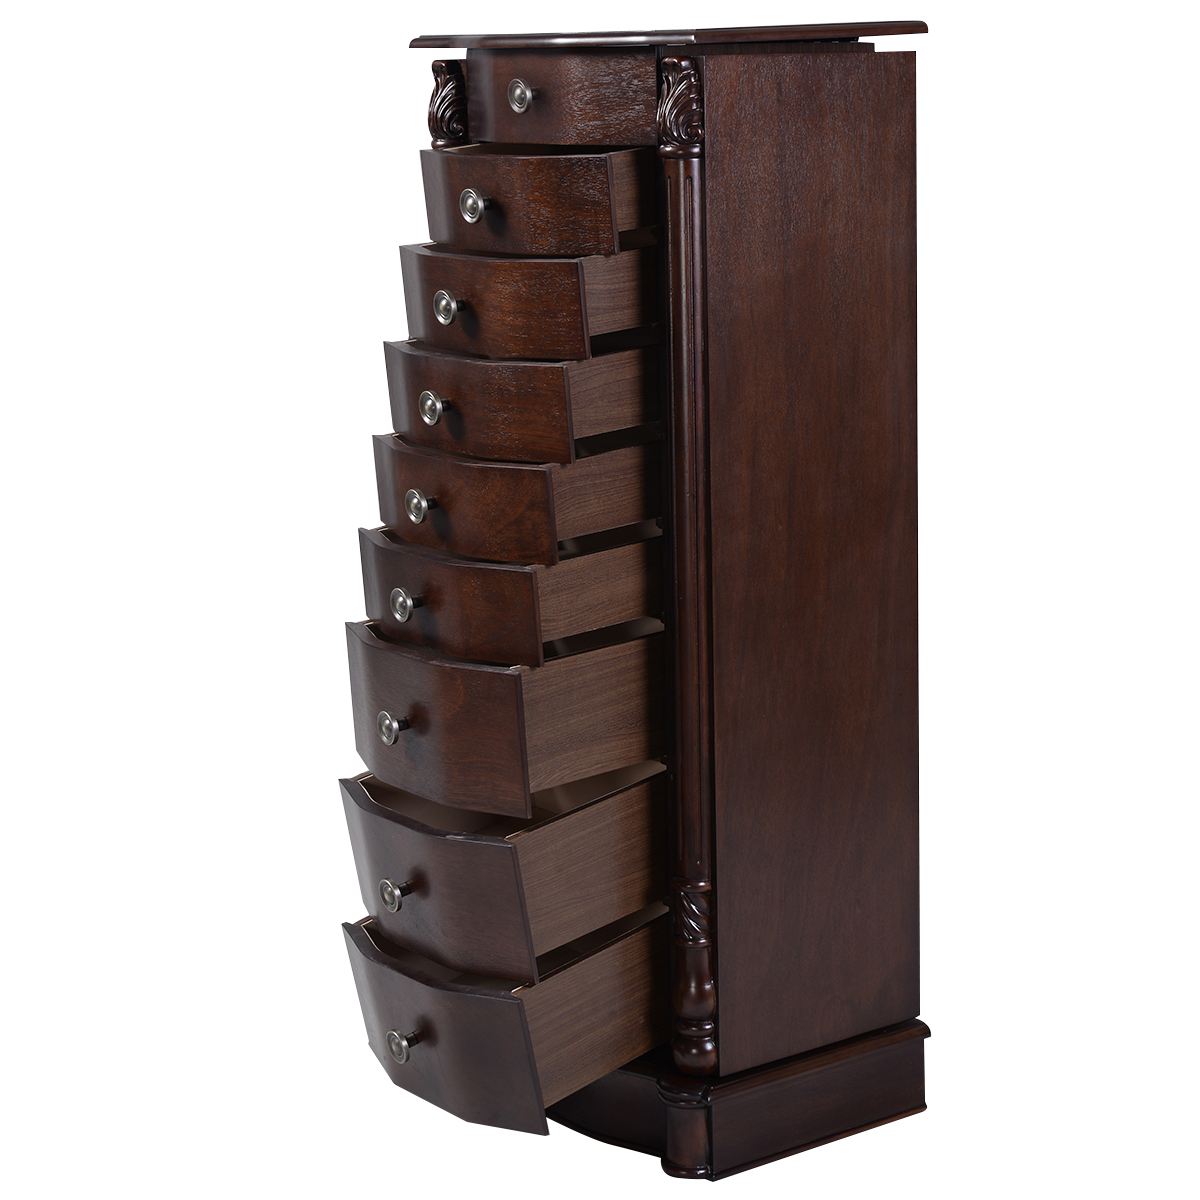 Beau Costway Wood Jewelry Cabinet Armoire Box Storage Chest Stand Organizer  Necklace   Walmart.com